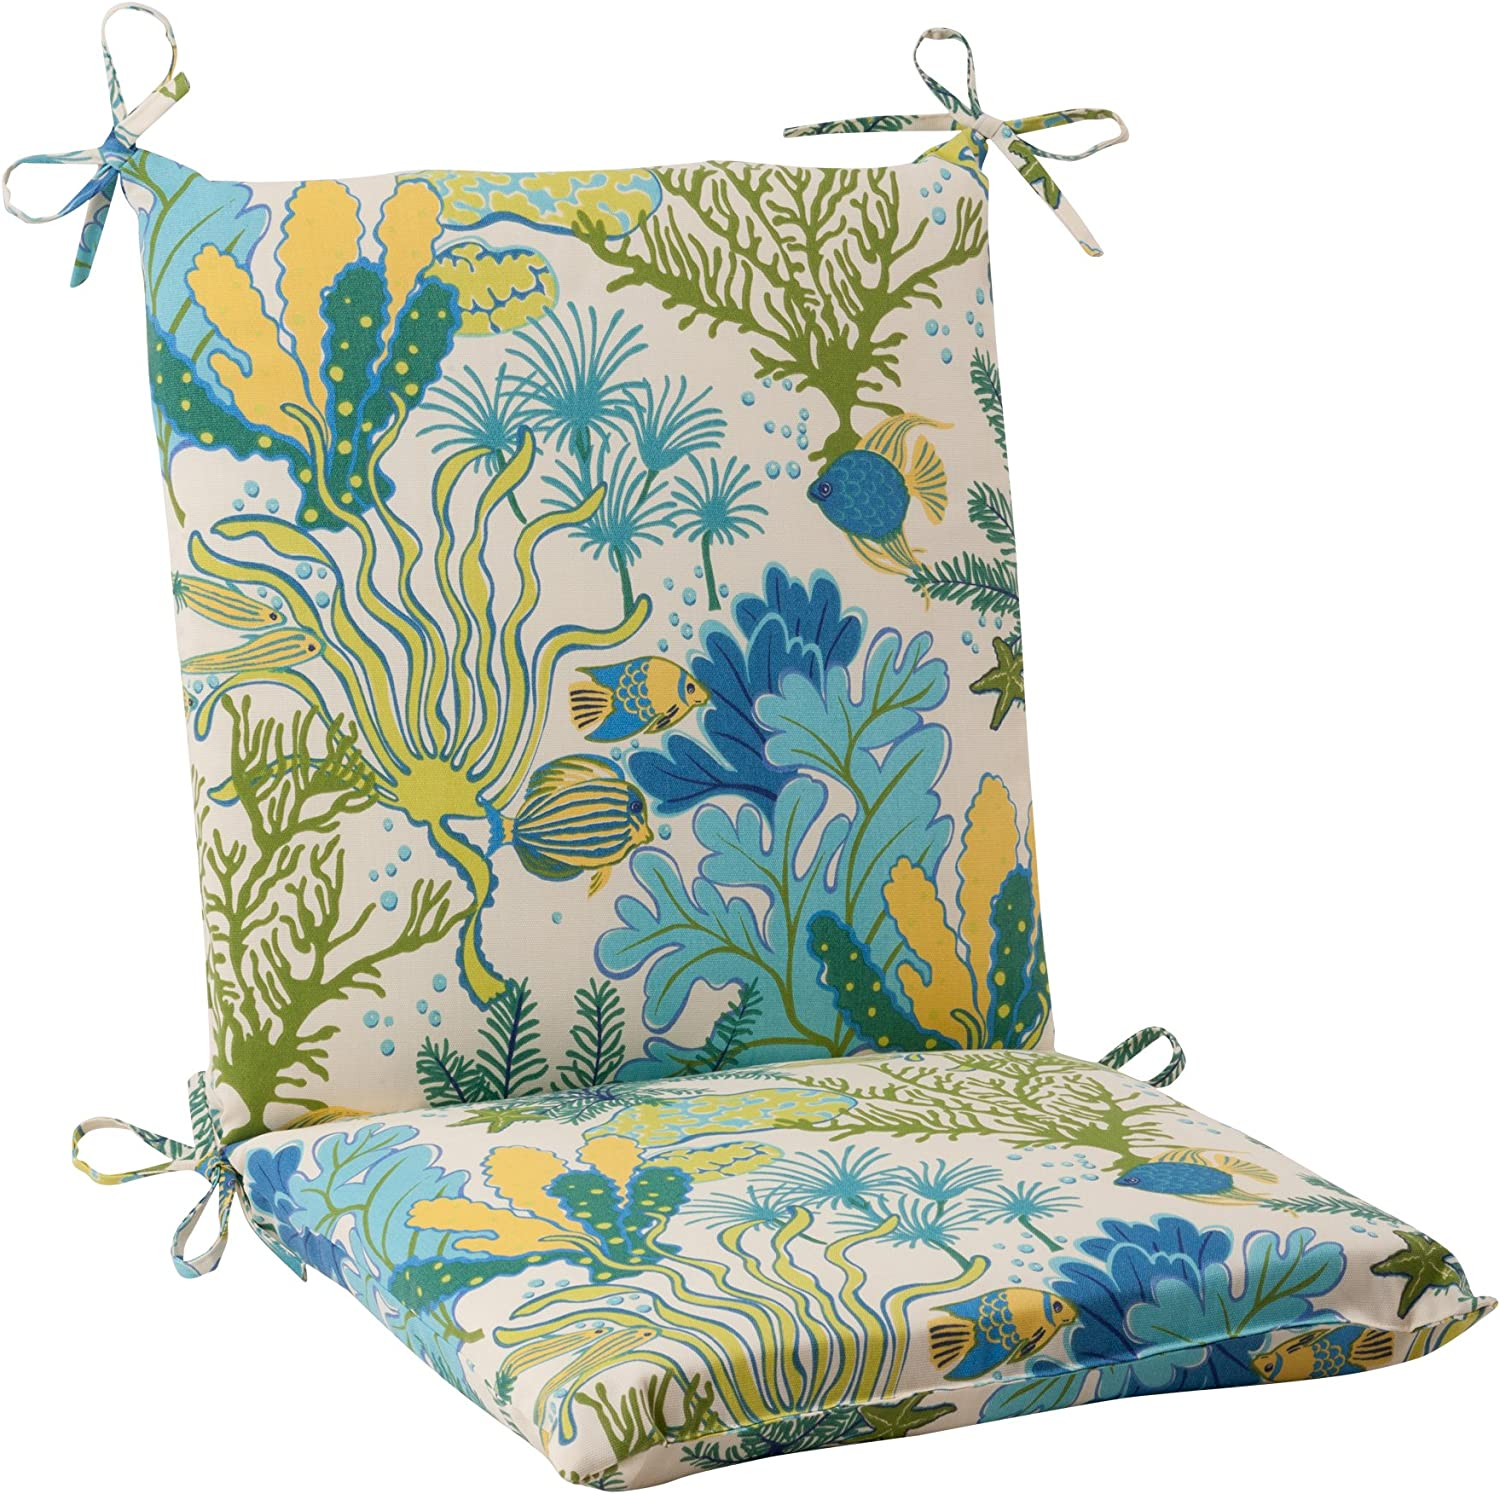 Pillow Perfect Outdoor Splish Splash Squared Chair Cushion, Blue